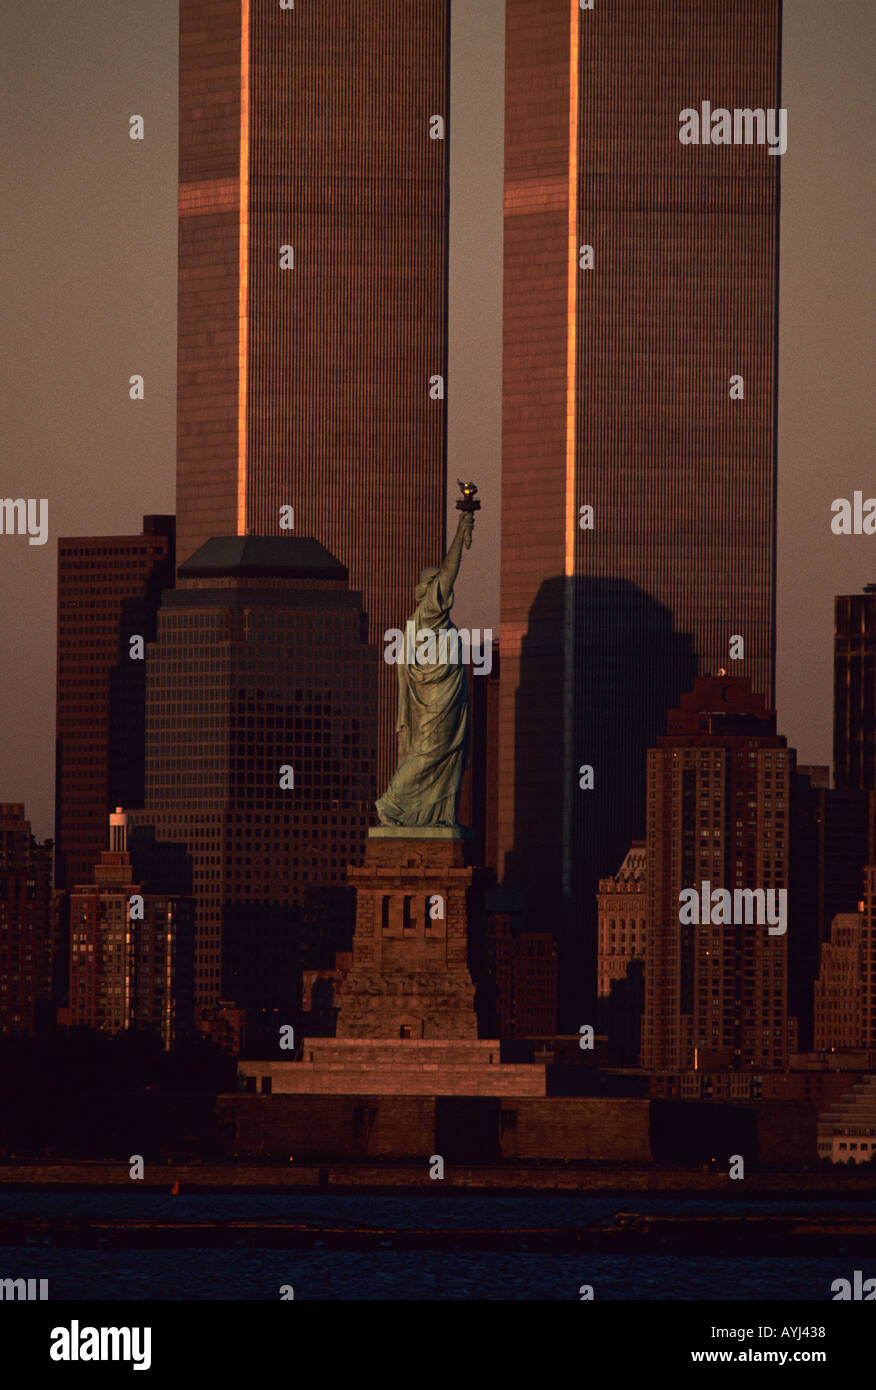 Statue of Liberty between the now destroyed Twin Towers